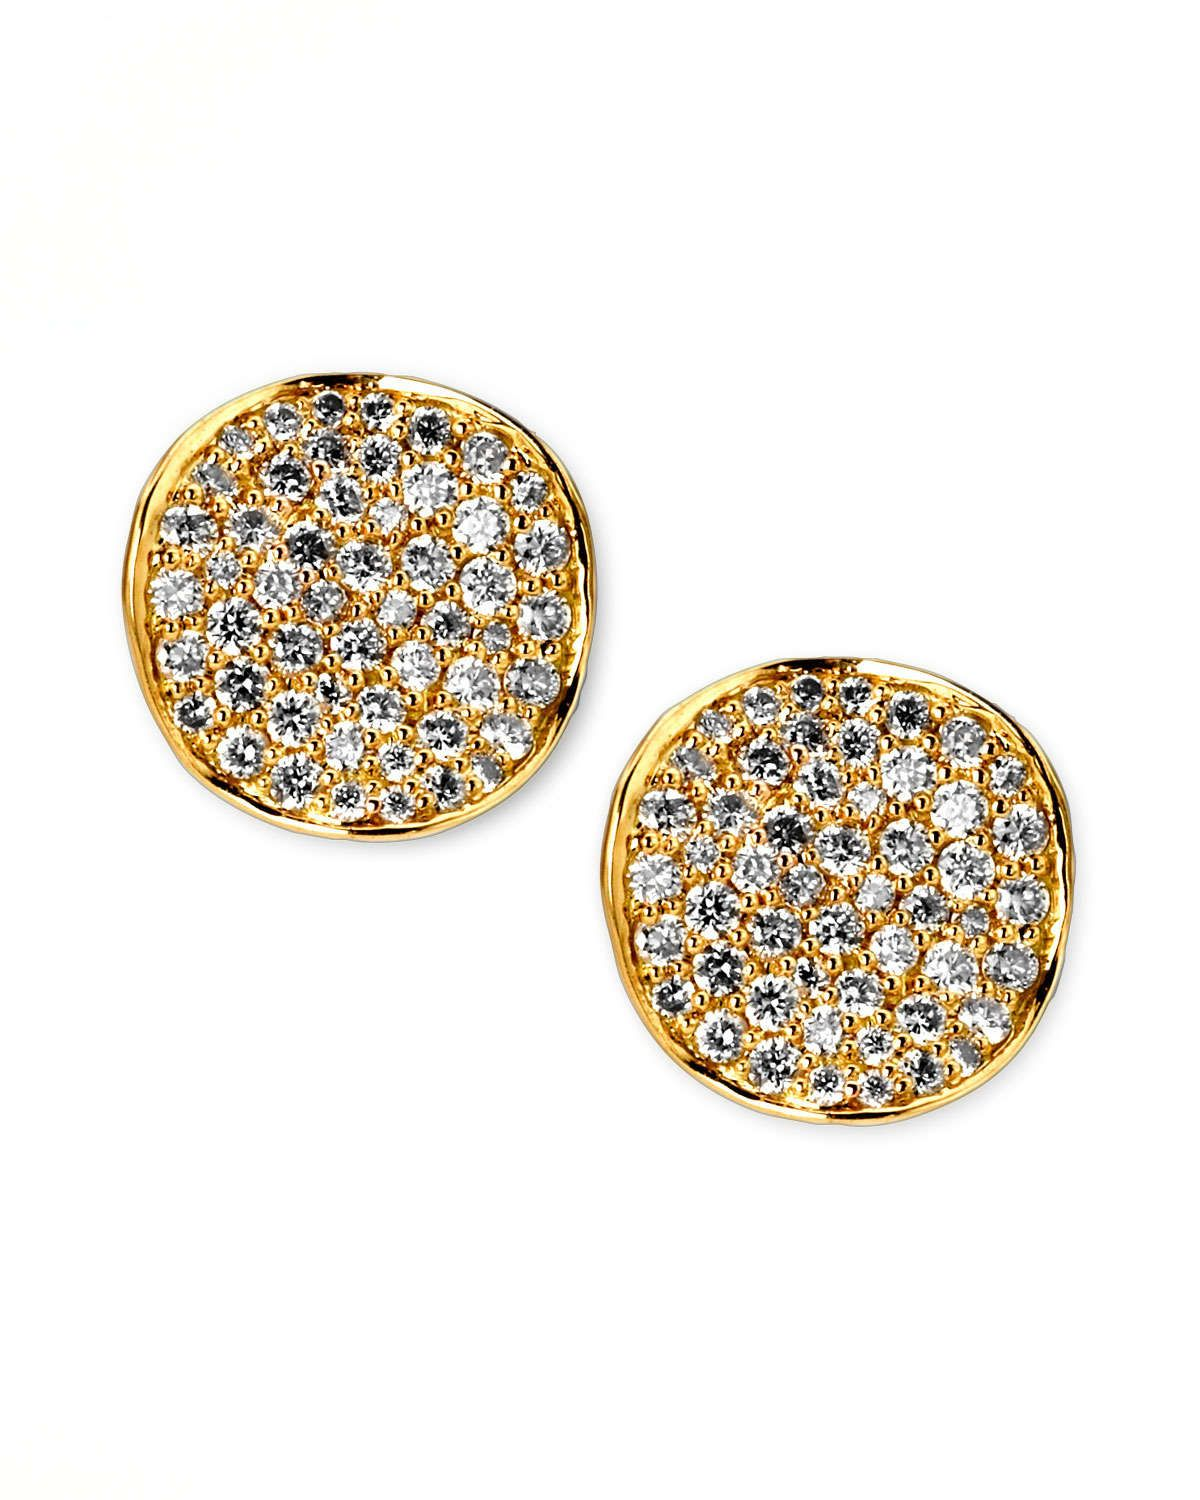 Ippolita Stardust Mini Diamond Stud Earrings SMZKxGj7M